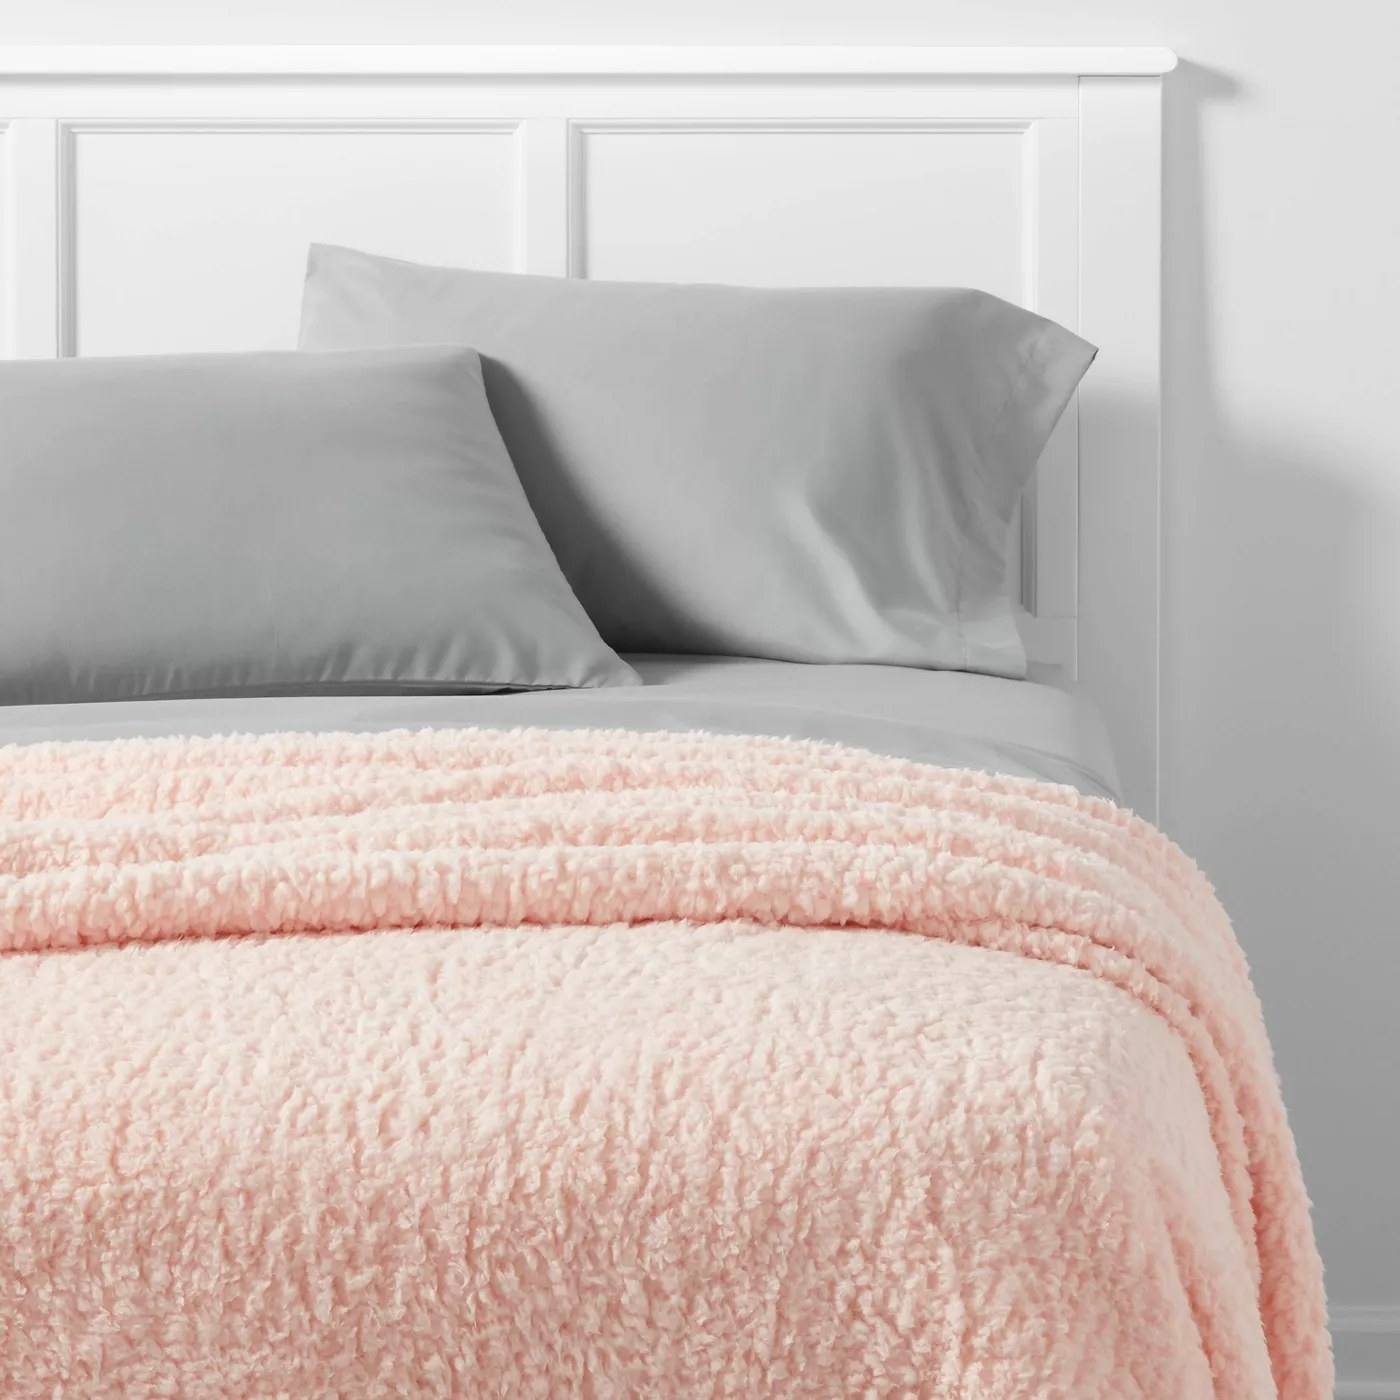 The pink blanket on a bed